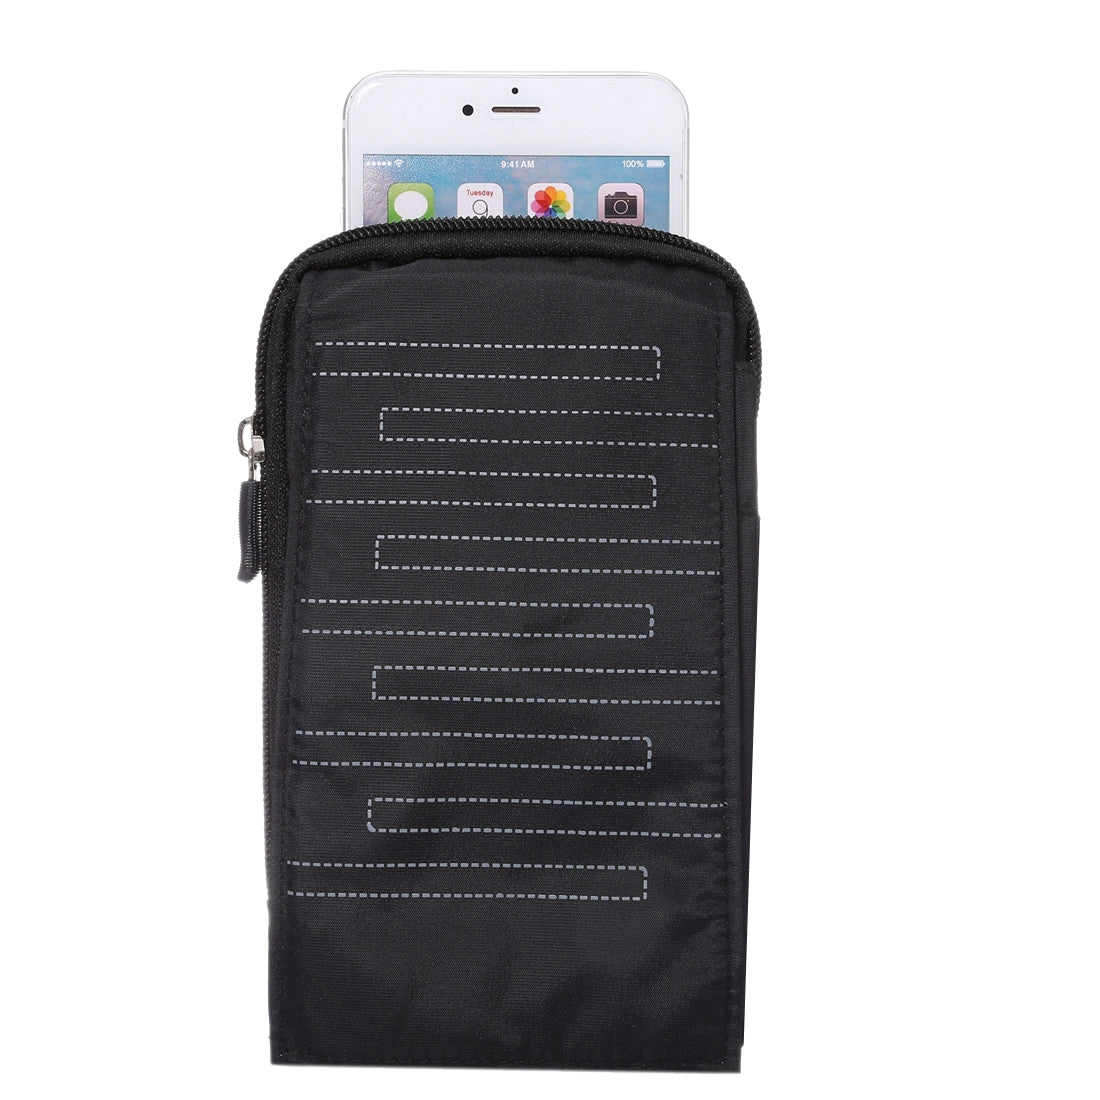 6.4 inch Multifunctional Rectangular Pattern Canvas Sports Storage Waist Packs / Phone Cases / Hiking Bag